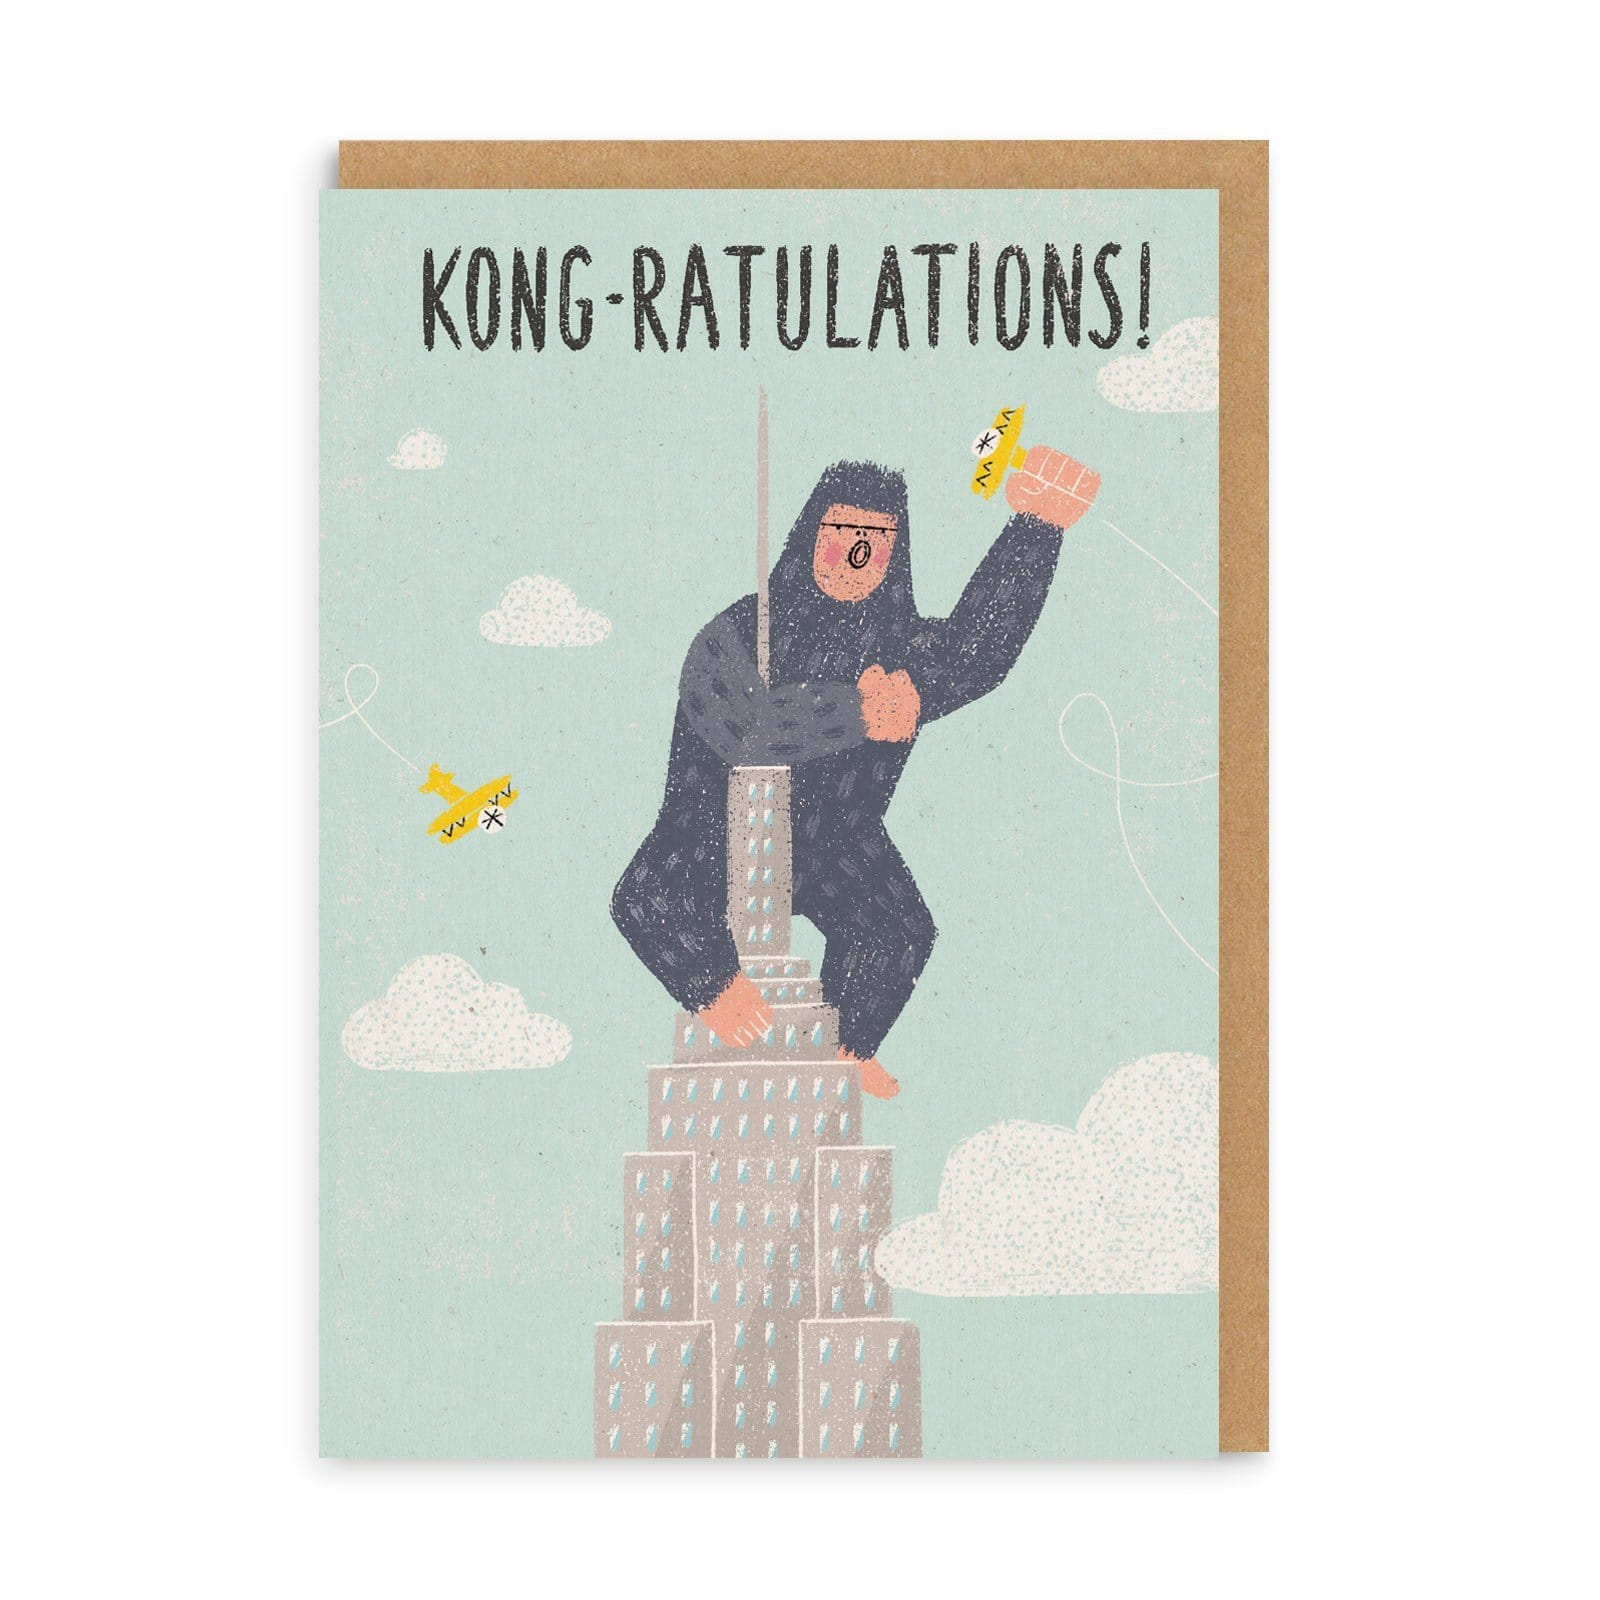 Kong-ratulations Congratulations Greeting Card